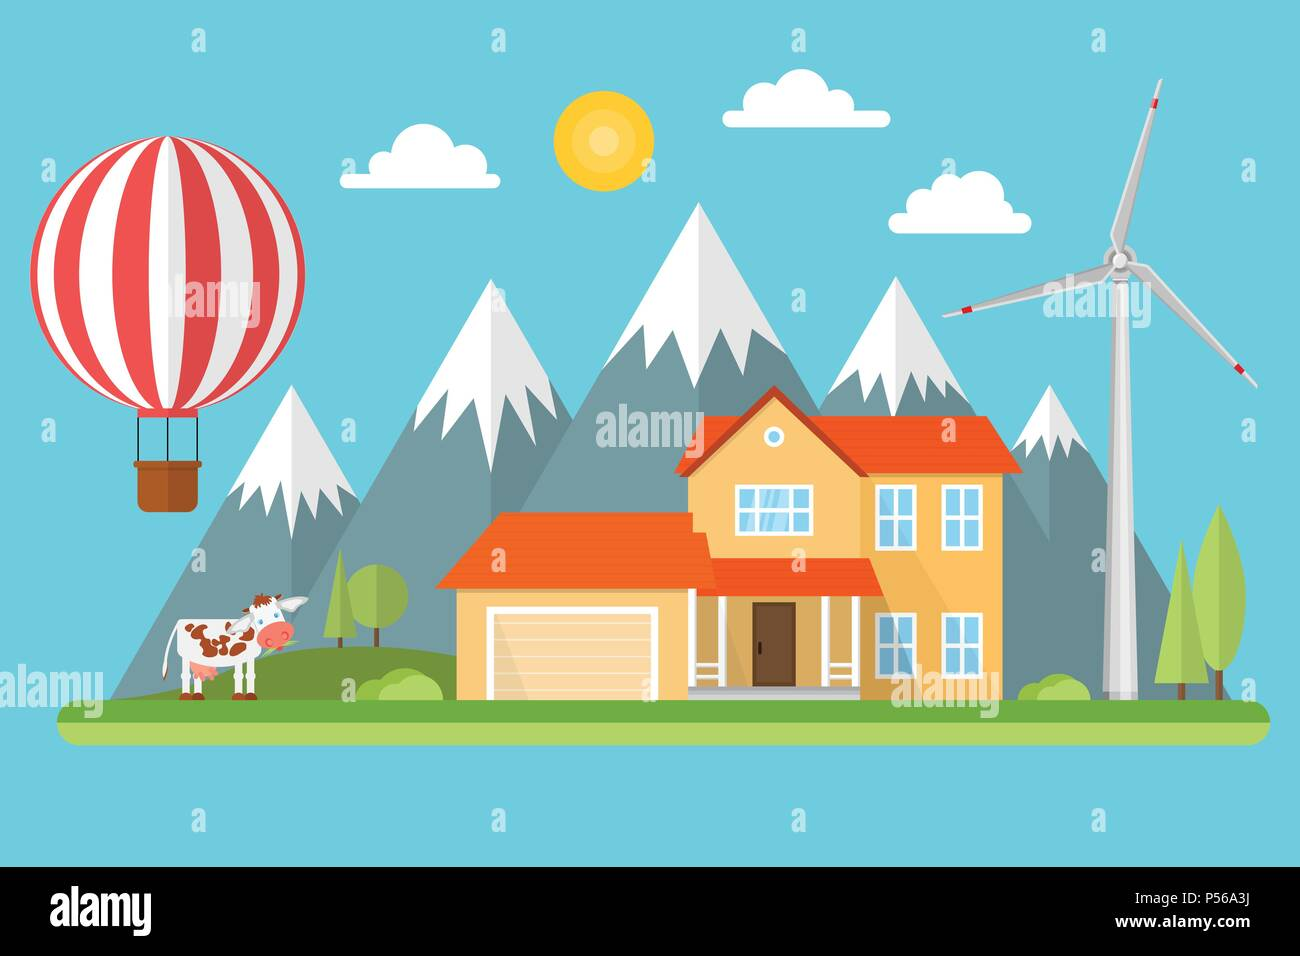 Suburban american house in the mountains among the trees with wind turbine, air balloon and cow. Green energy concept. Vector illustration. - Stock Vector